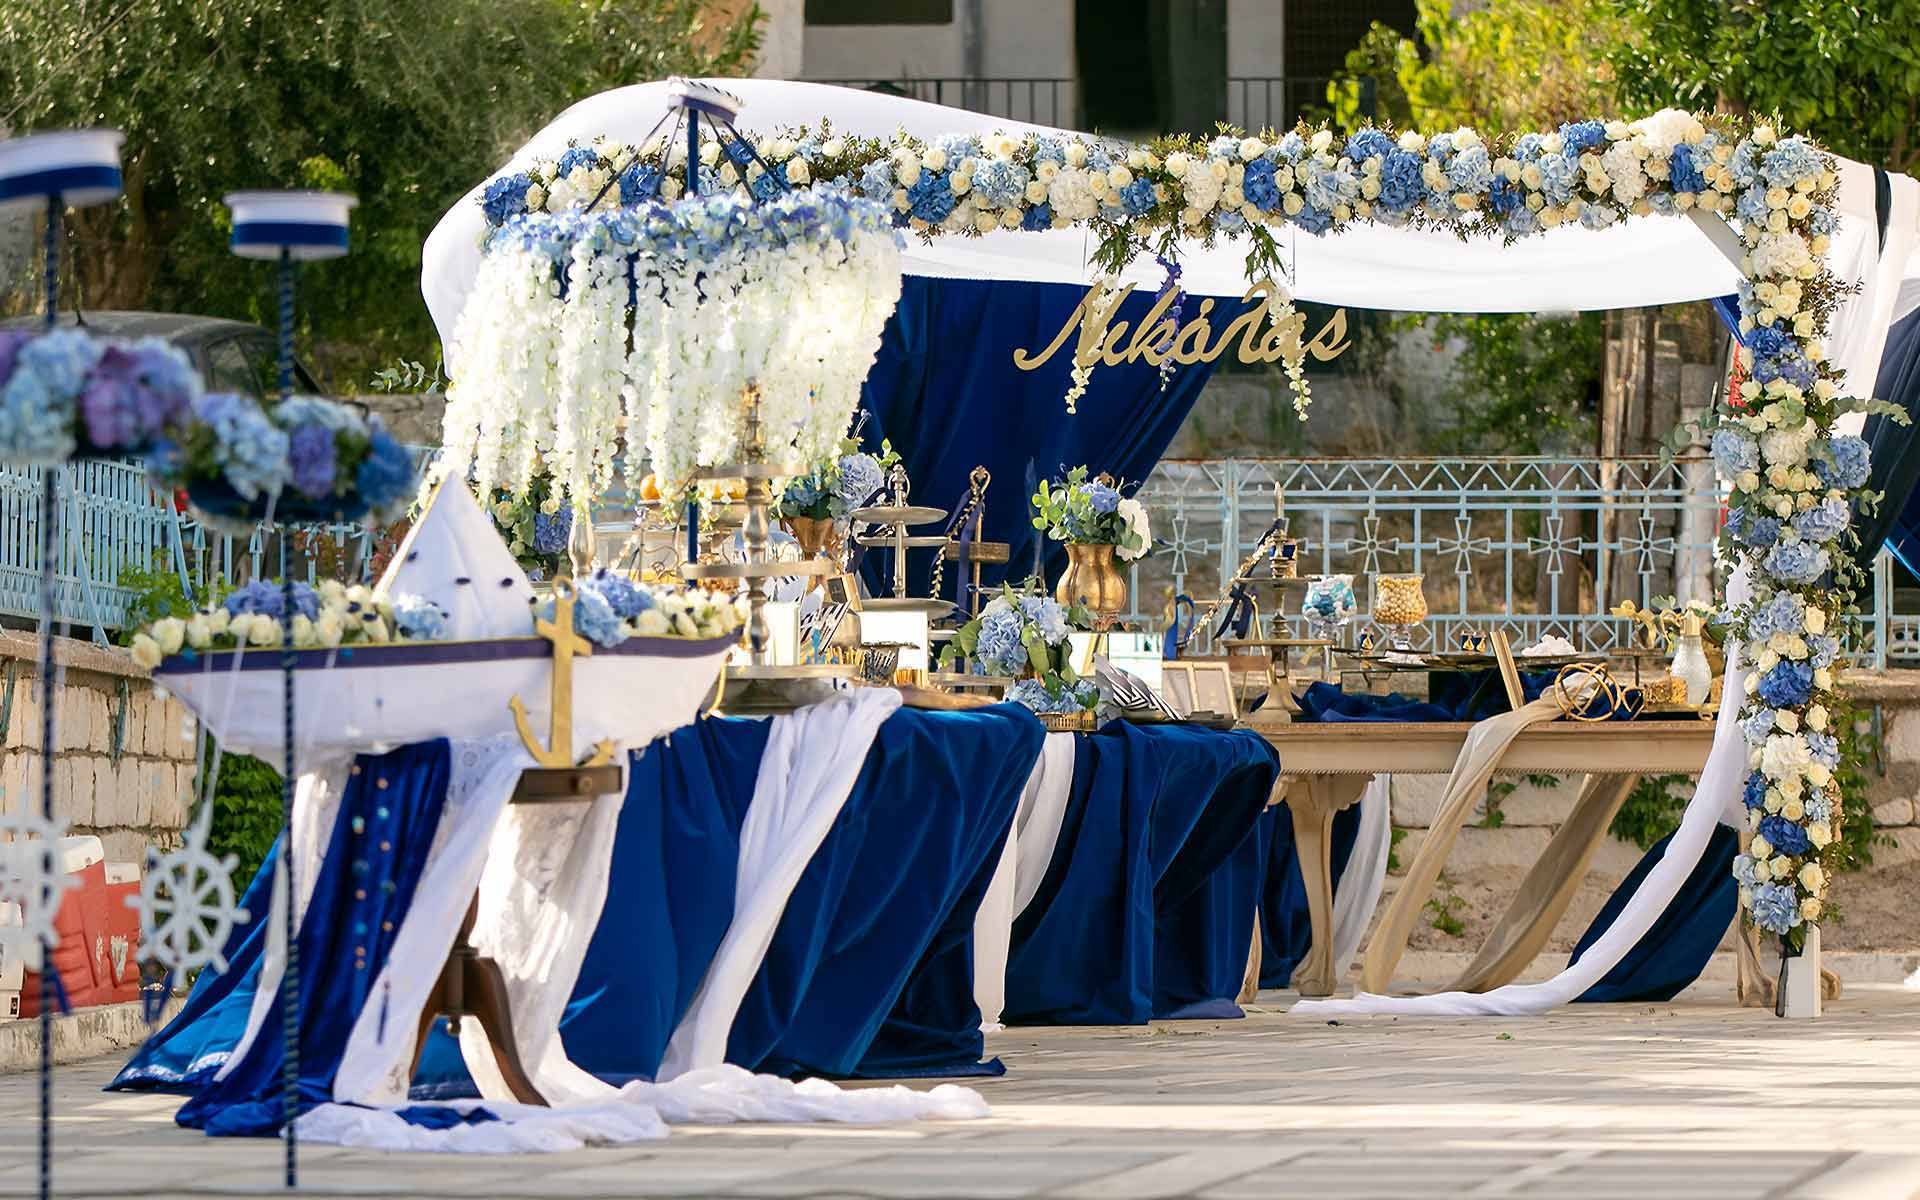 baptism desserts selection in a mandap